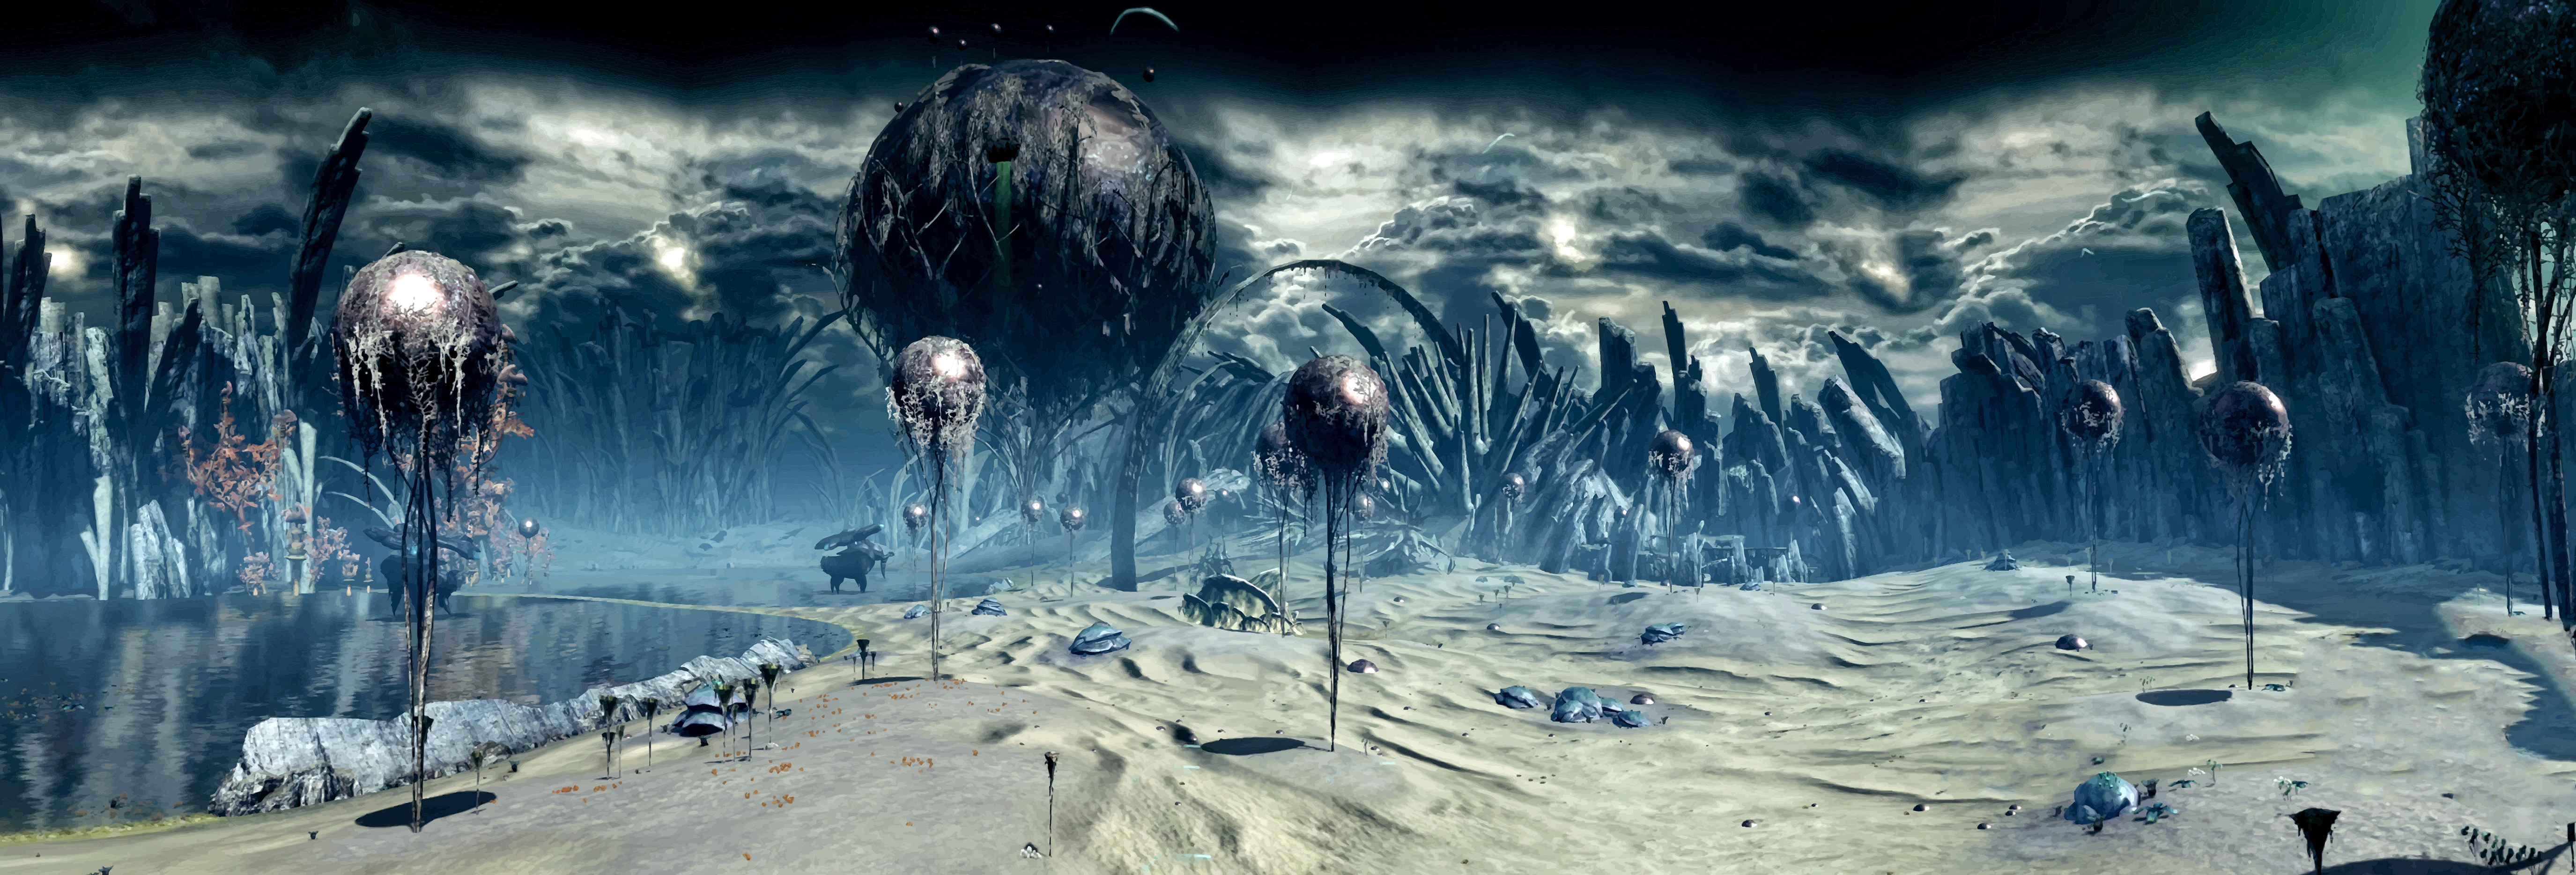 Xenoblade Chronicles X Wallpaper Posted By Ryan Anderson